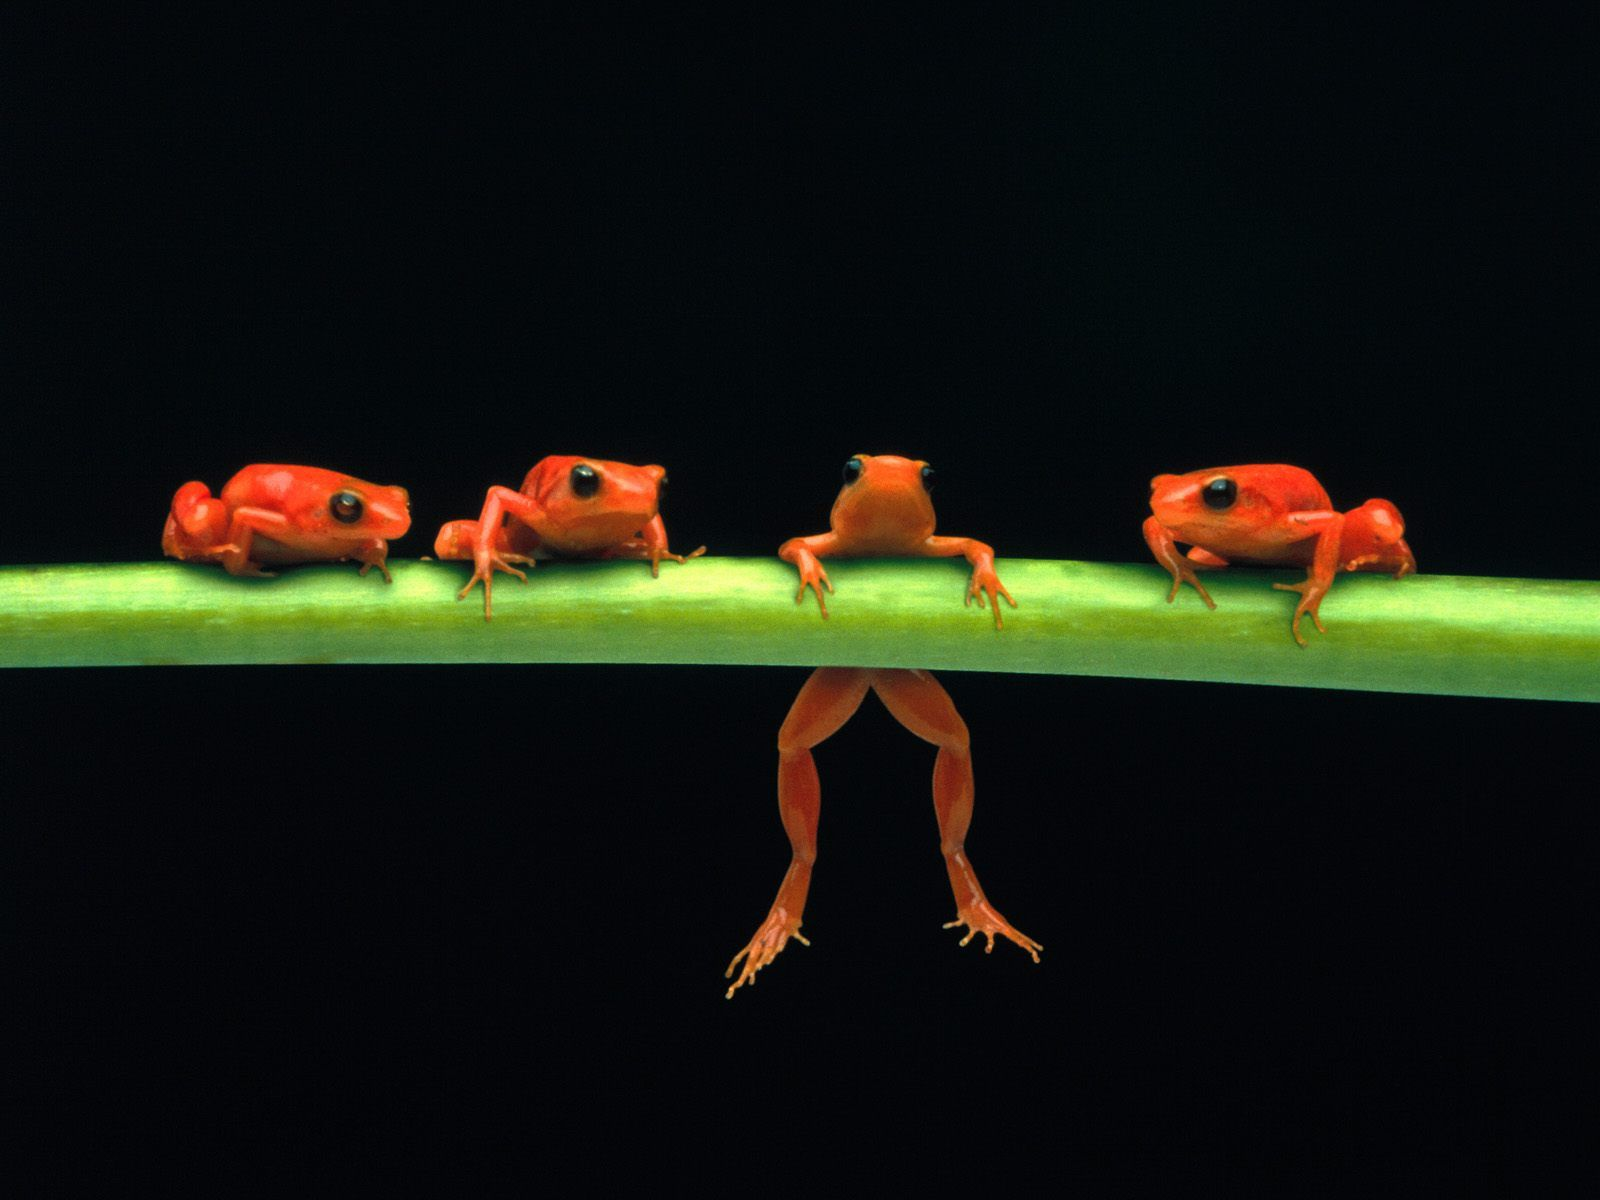 hd frog cartoon wallpaper | Colorful Frogs HQ 1600 X 1200 - Photo 6 ...